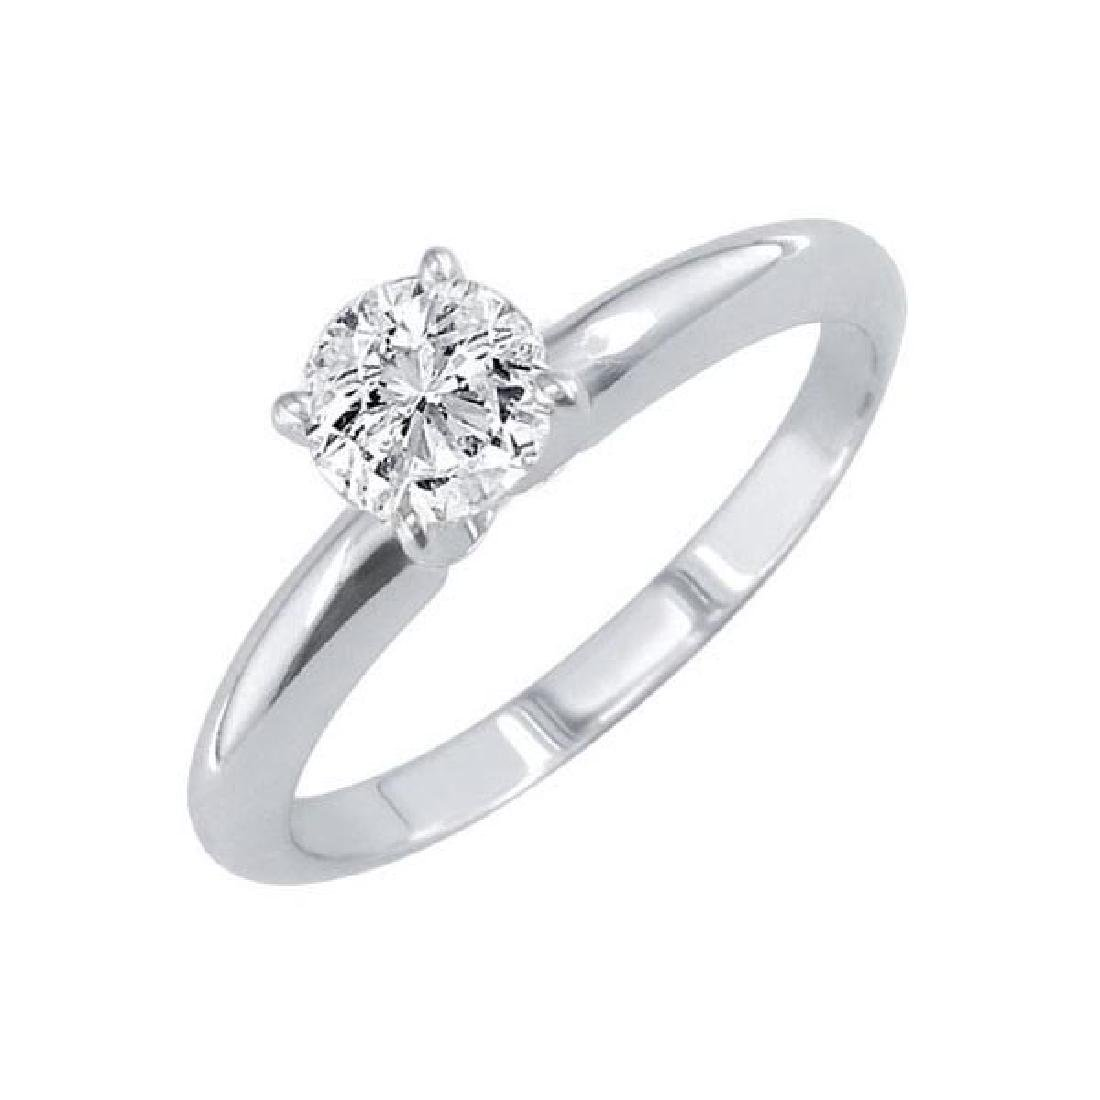 Certified 0.54 CTW Round Diamond Solitaire 14k Ring D/S